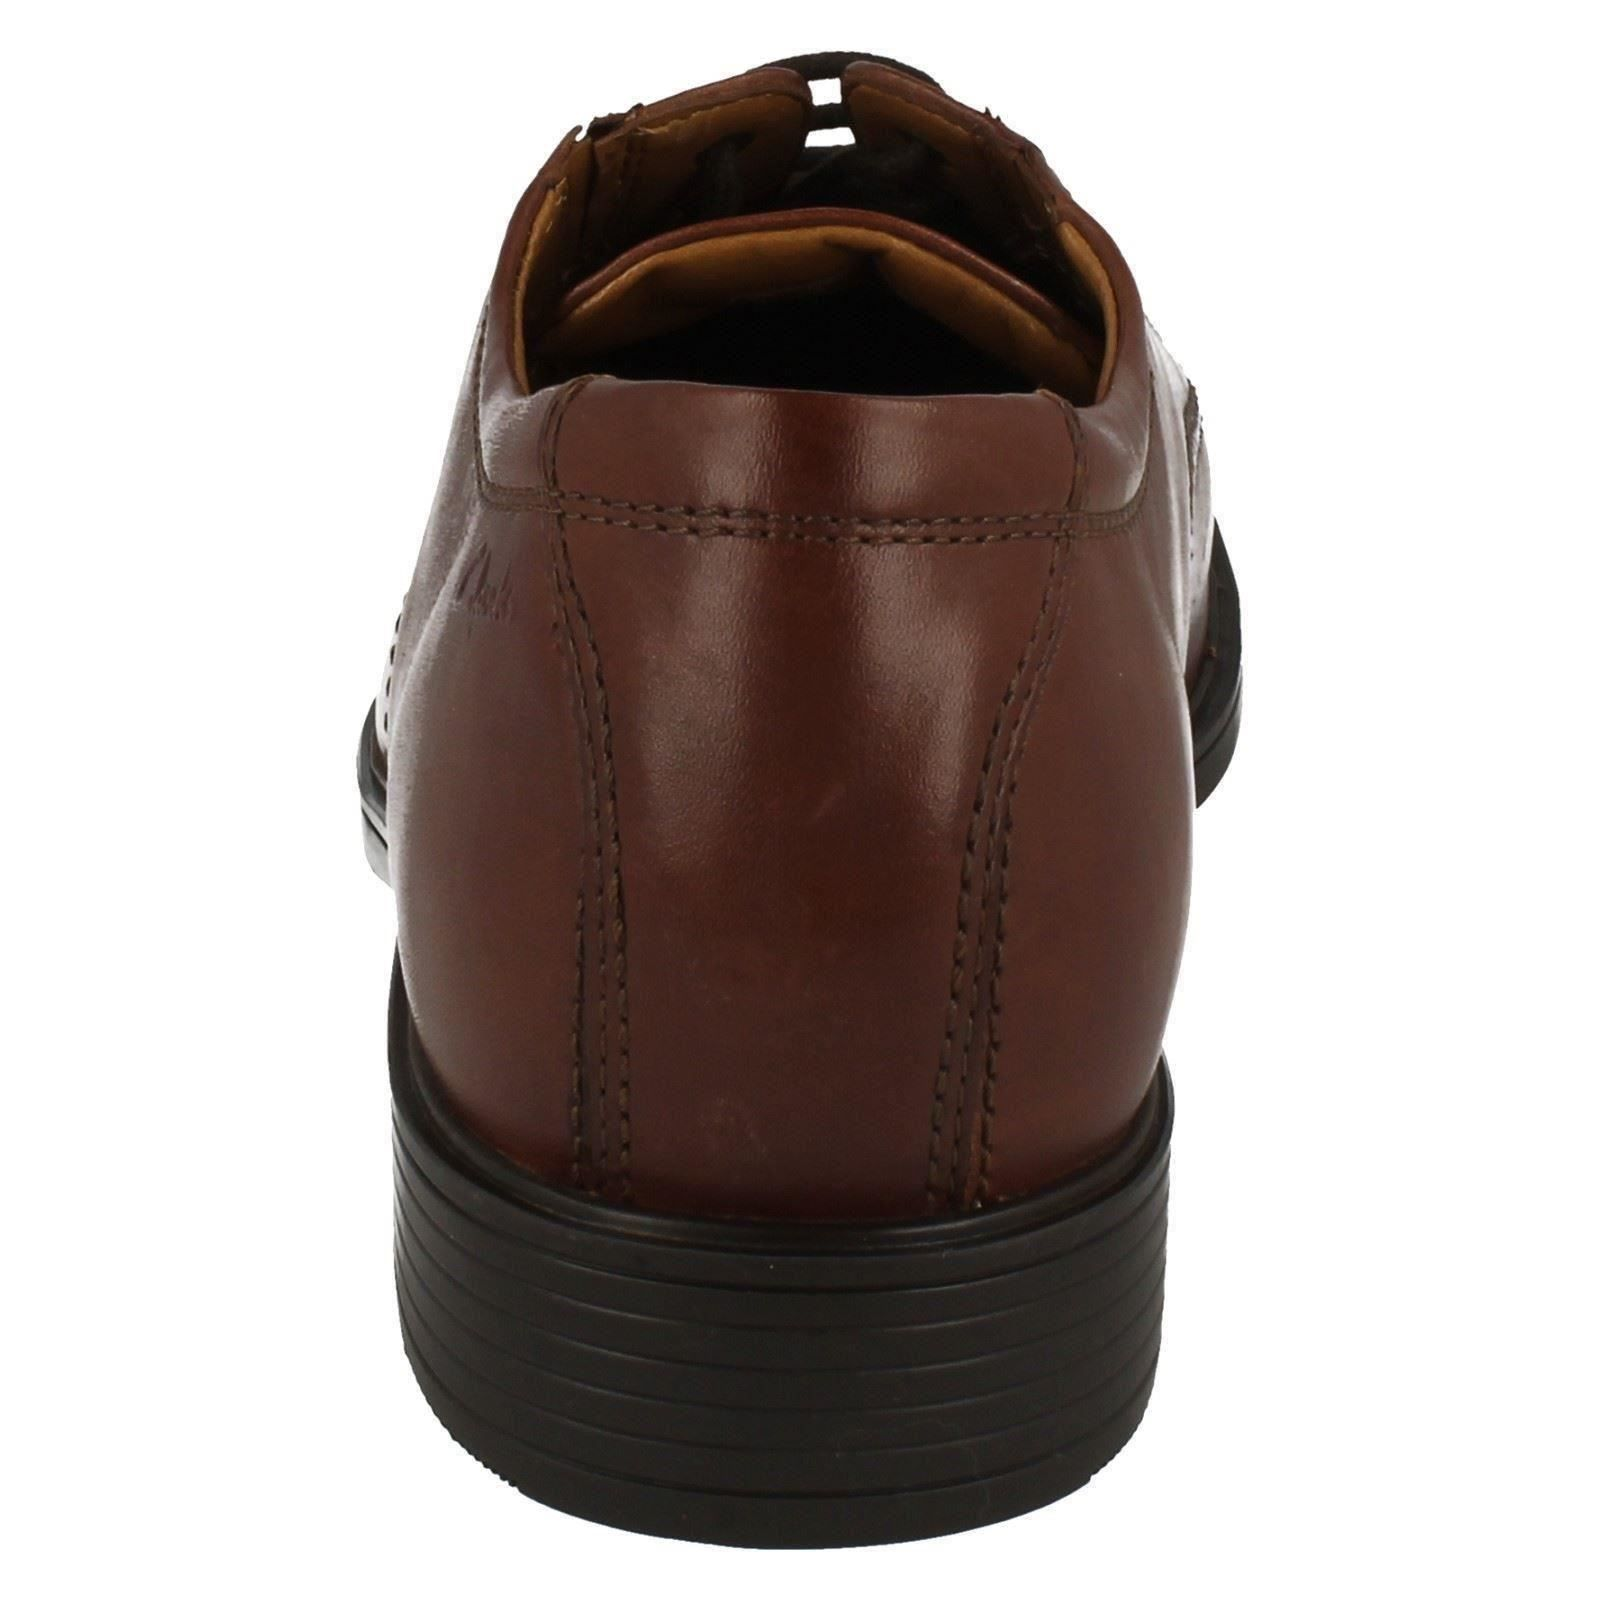 Mens-Clarks-Formal-Lace-Up-Shoes-Tilden-Cap thumbnail 18